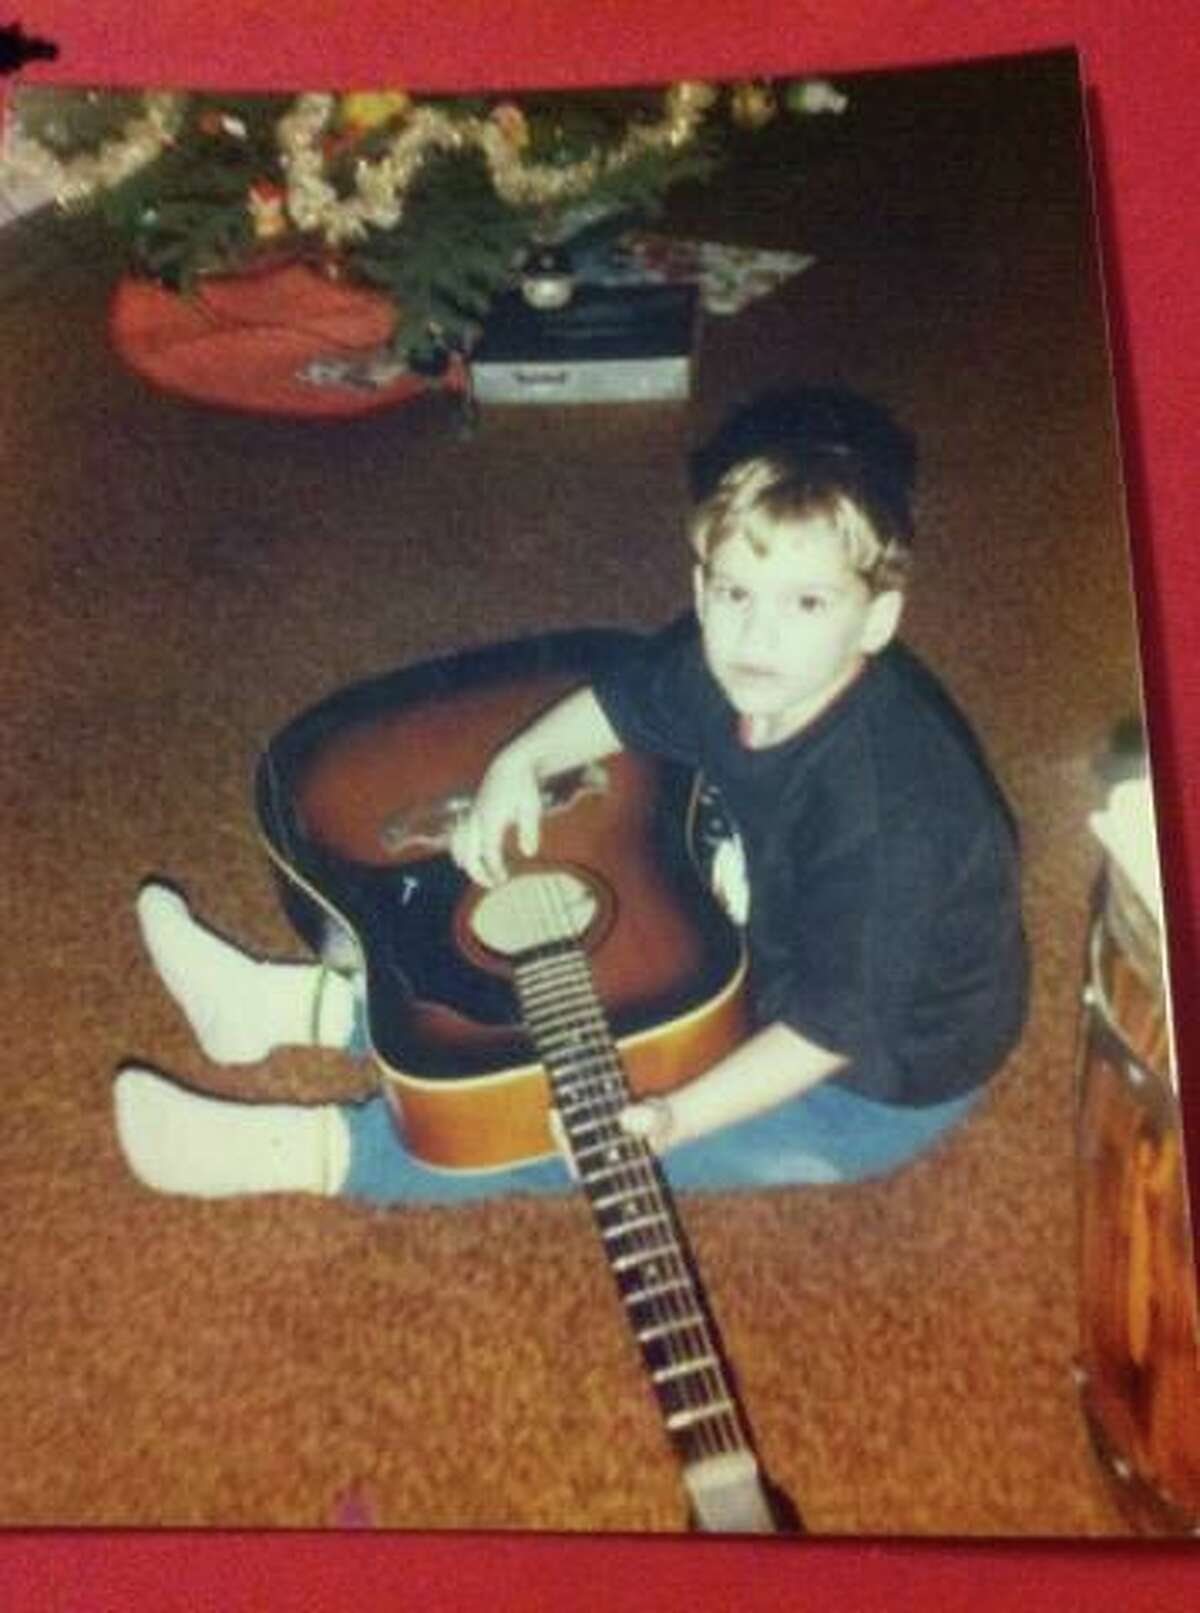 Pat Tiernan, at age 7, sits on the floor with a 12-string guitar. (Courtesy Tiernan family)